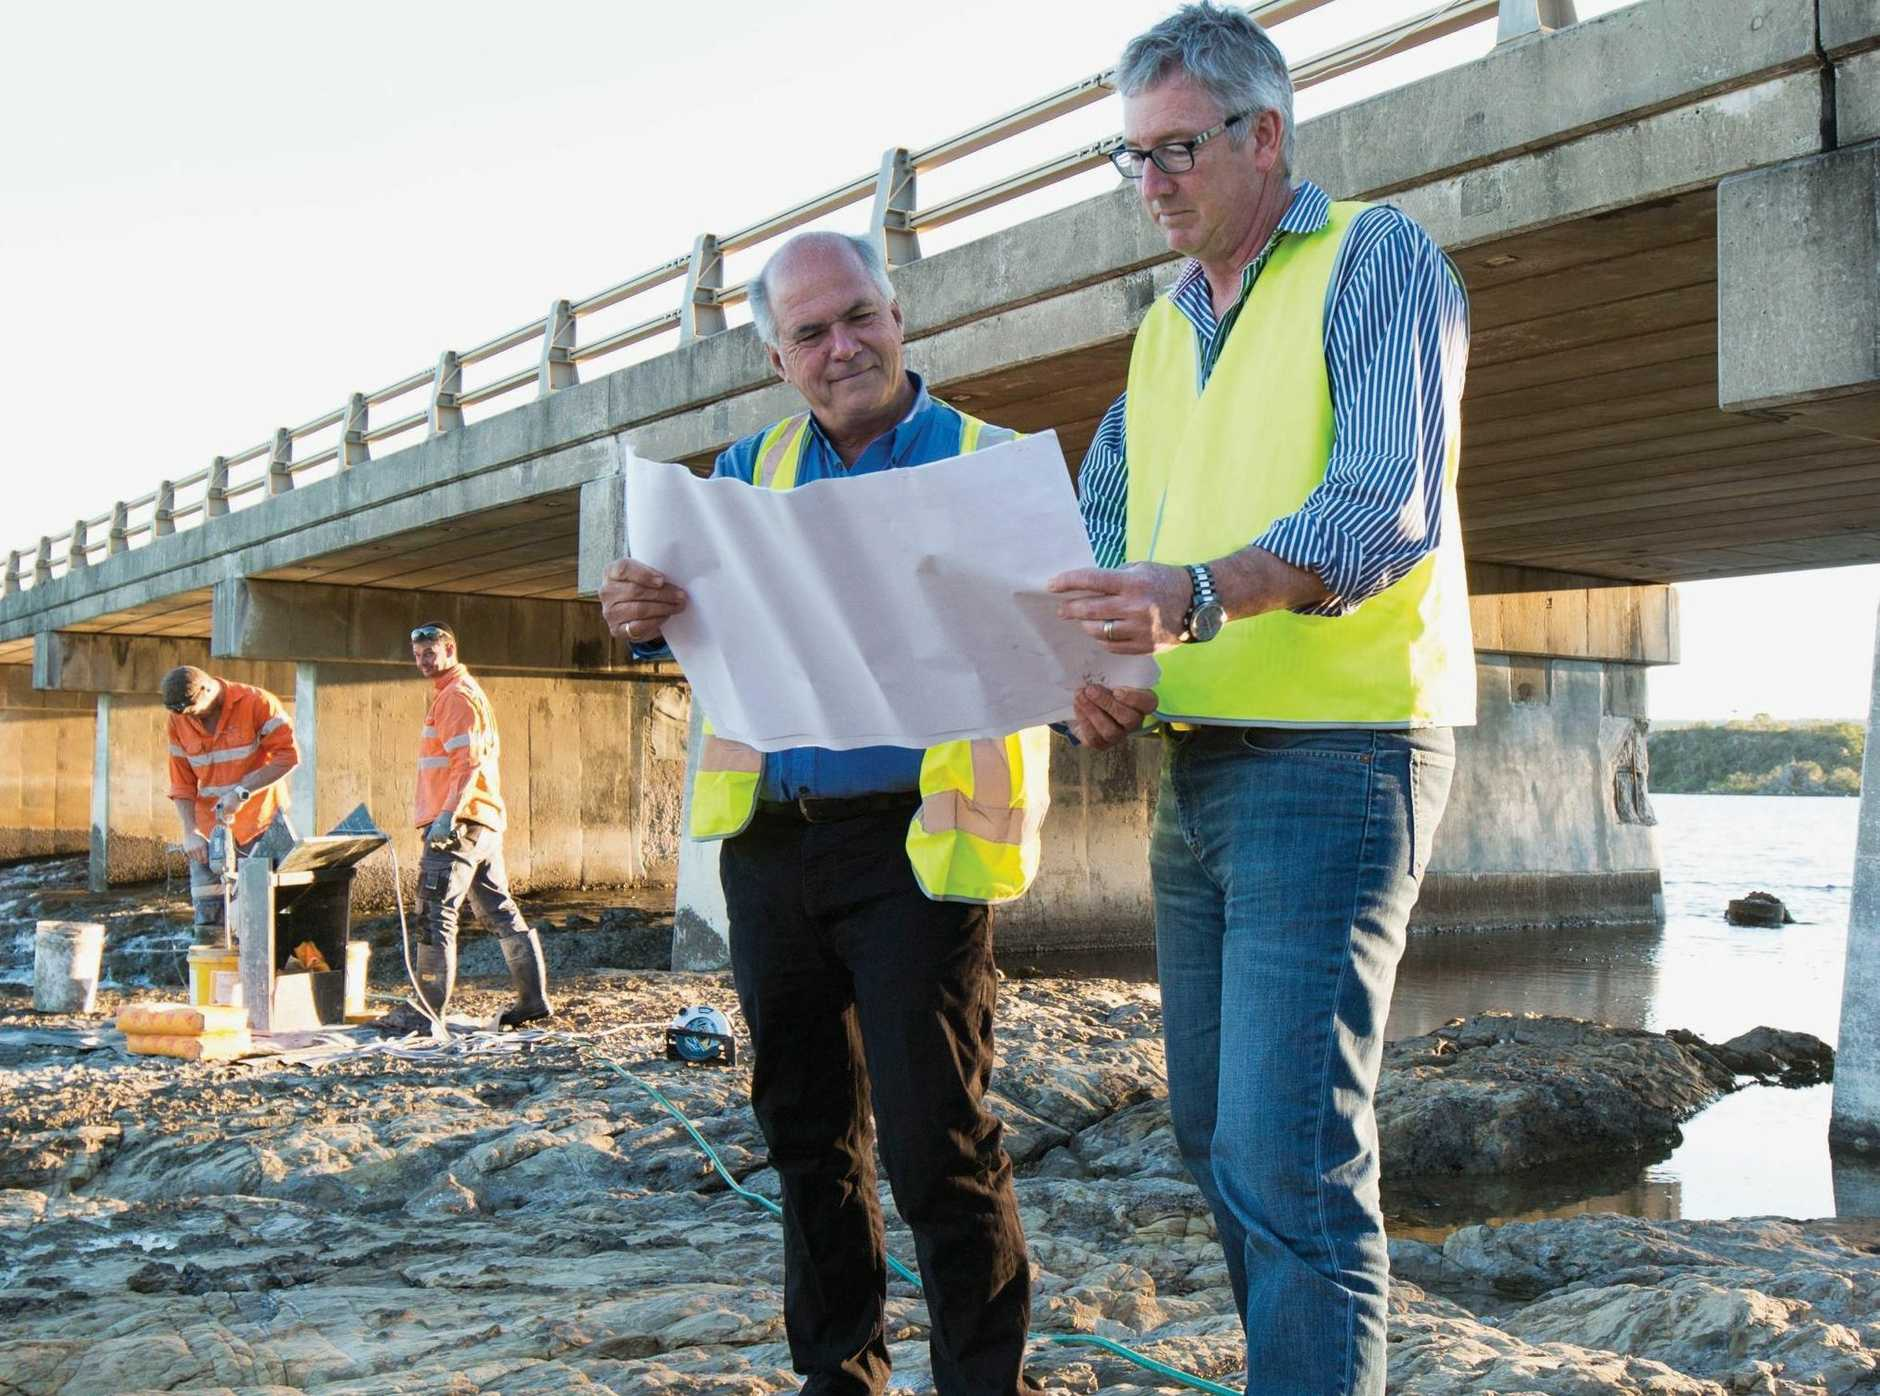 The preliminary concept plan of identified areas of the Causeway Lake for the feasibility to investigating enhancing opportunities at the Capricorn Coast location.